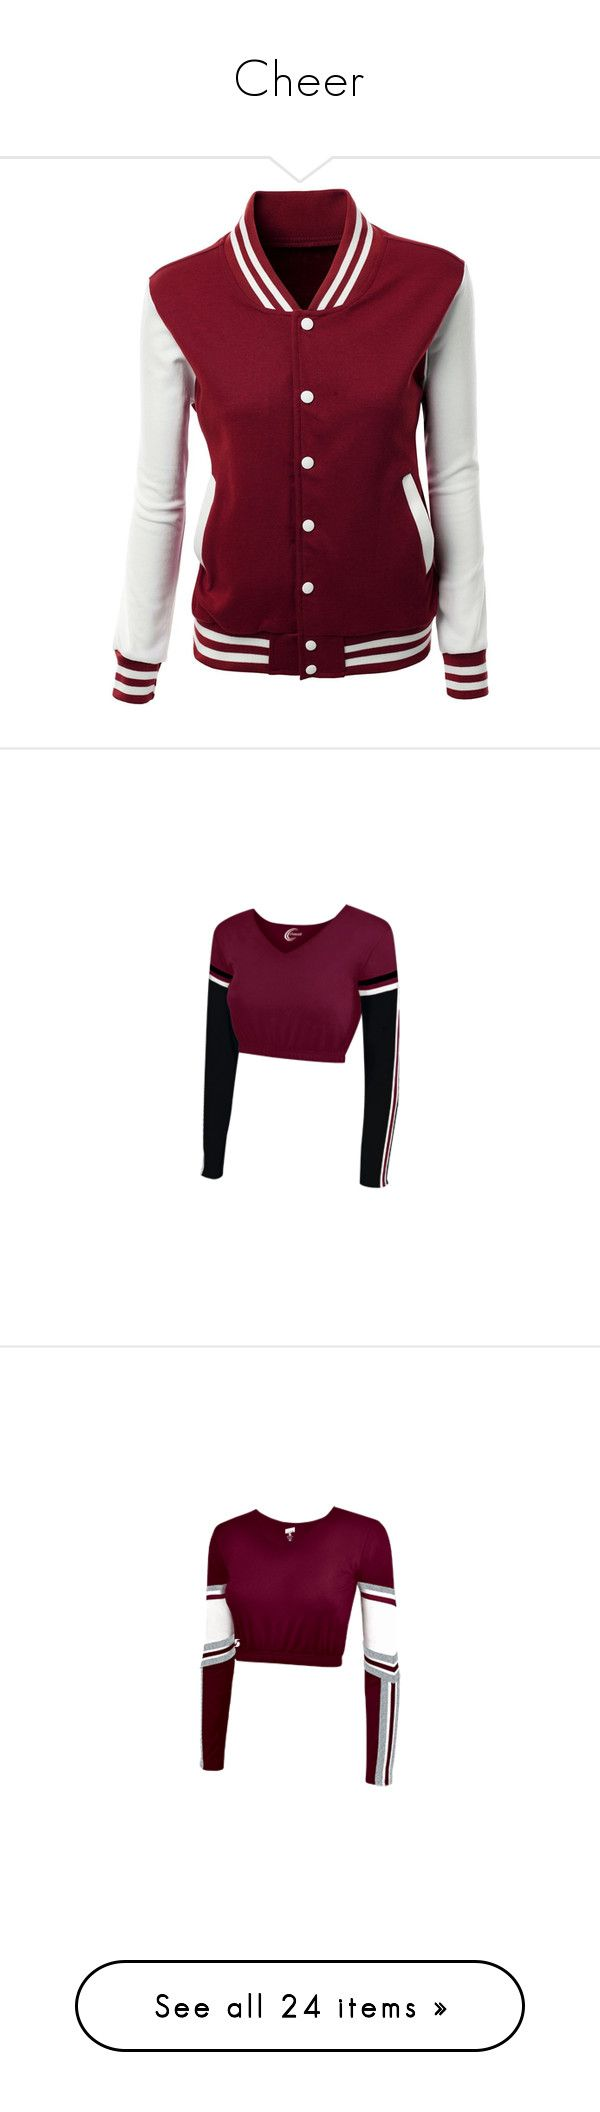 """""""Cheer"""" by alexisnagrampa ❤ liked on Polyvore featuring outerwear, jackets, tops, san, cheer, varsity style jacket, letterman jacket, purple letterman jacket, college jacket and purple jacket"""